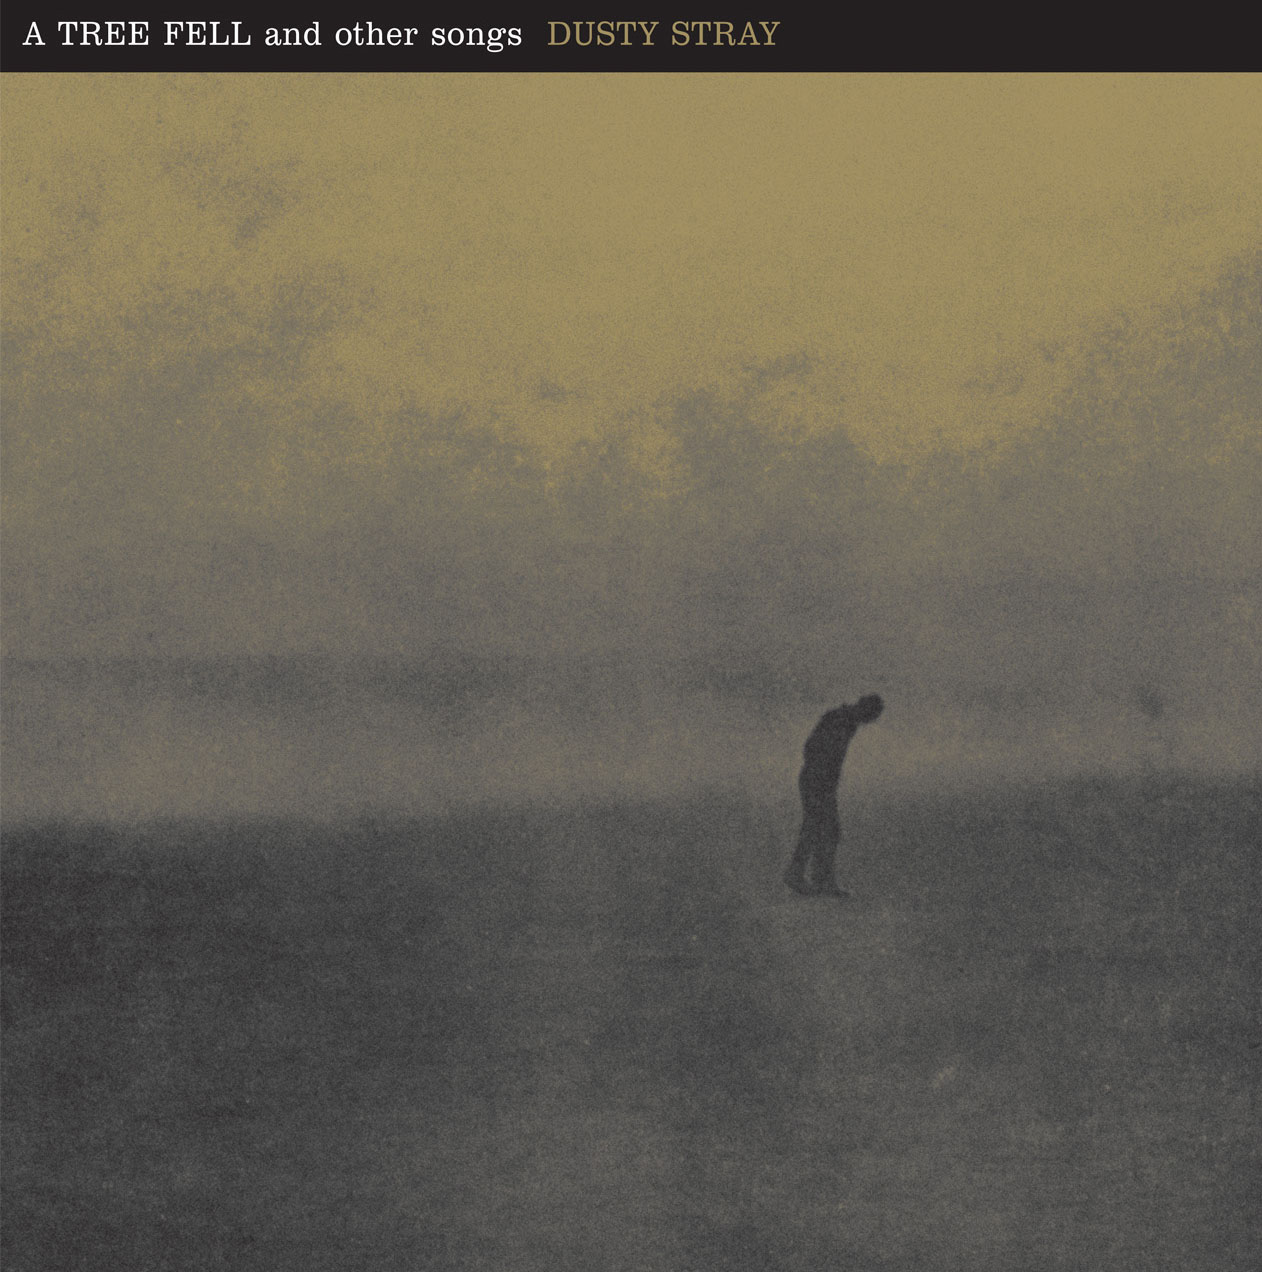 A Tree Fell And Other Songs cd - Dusty Stray